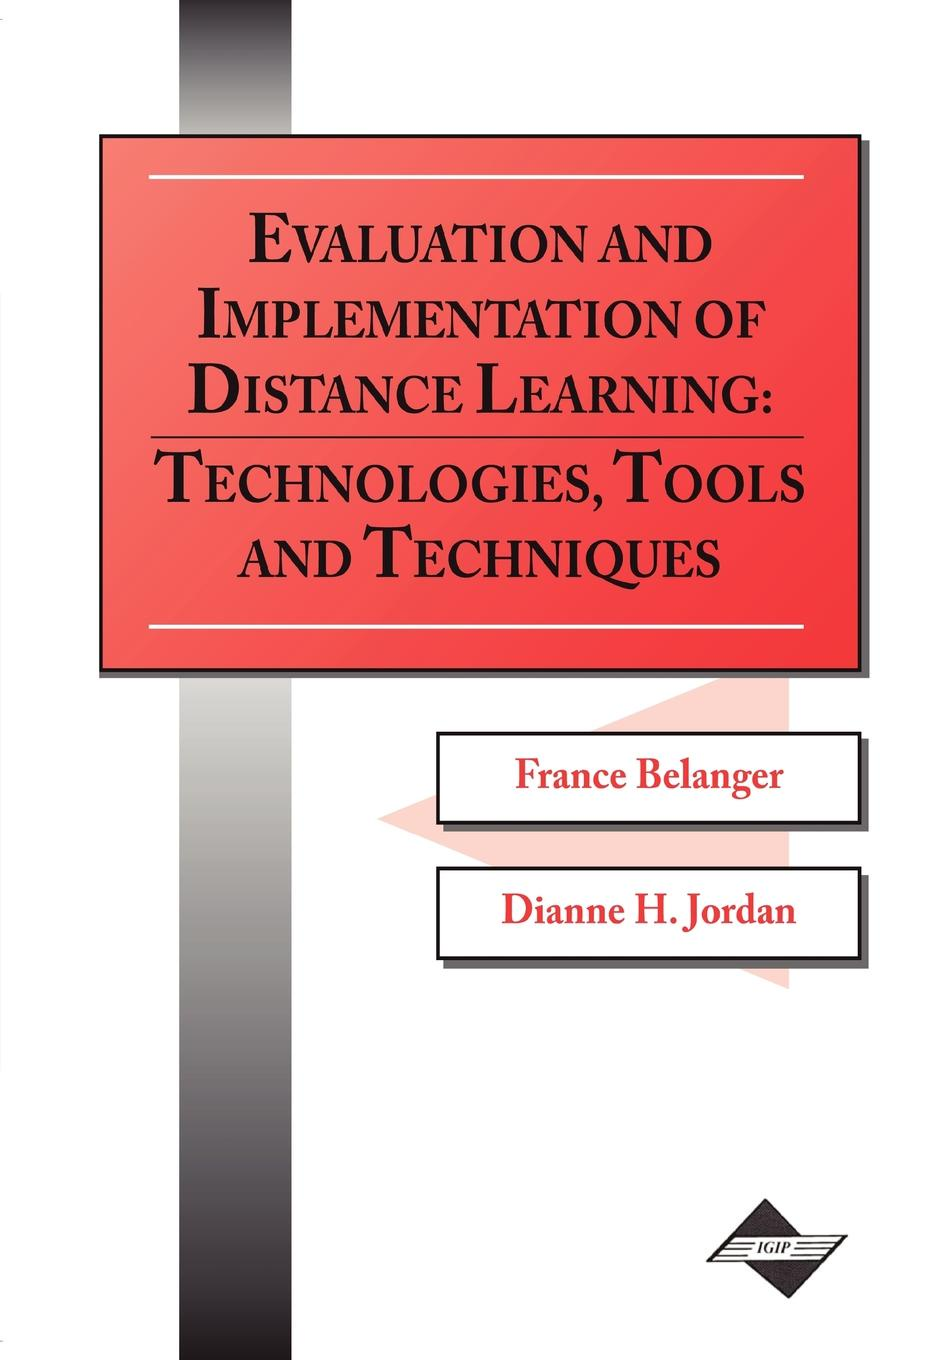 France Belanger, Dianne H. Jordan Evaluation and Implementation of Distance Learning. Technologies, Tools, and Techniques practical program evaluation assessing and improving planning implementation and effectiveness